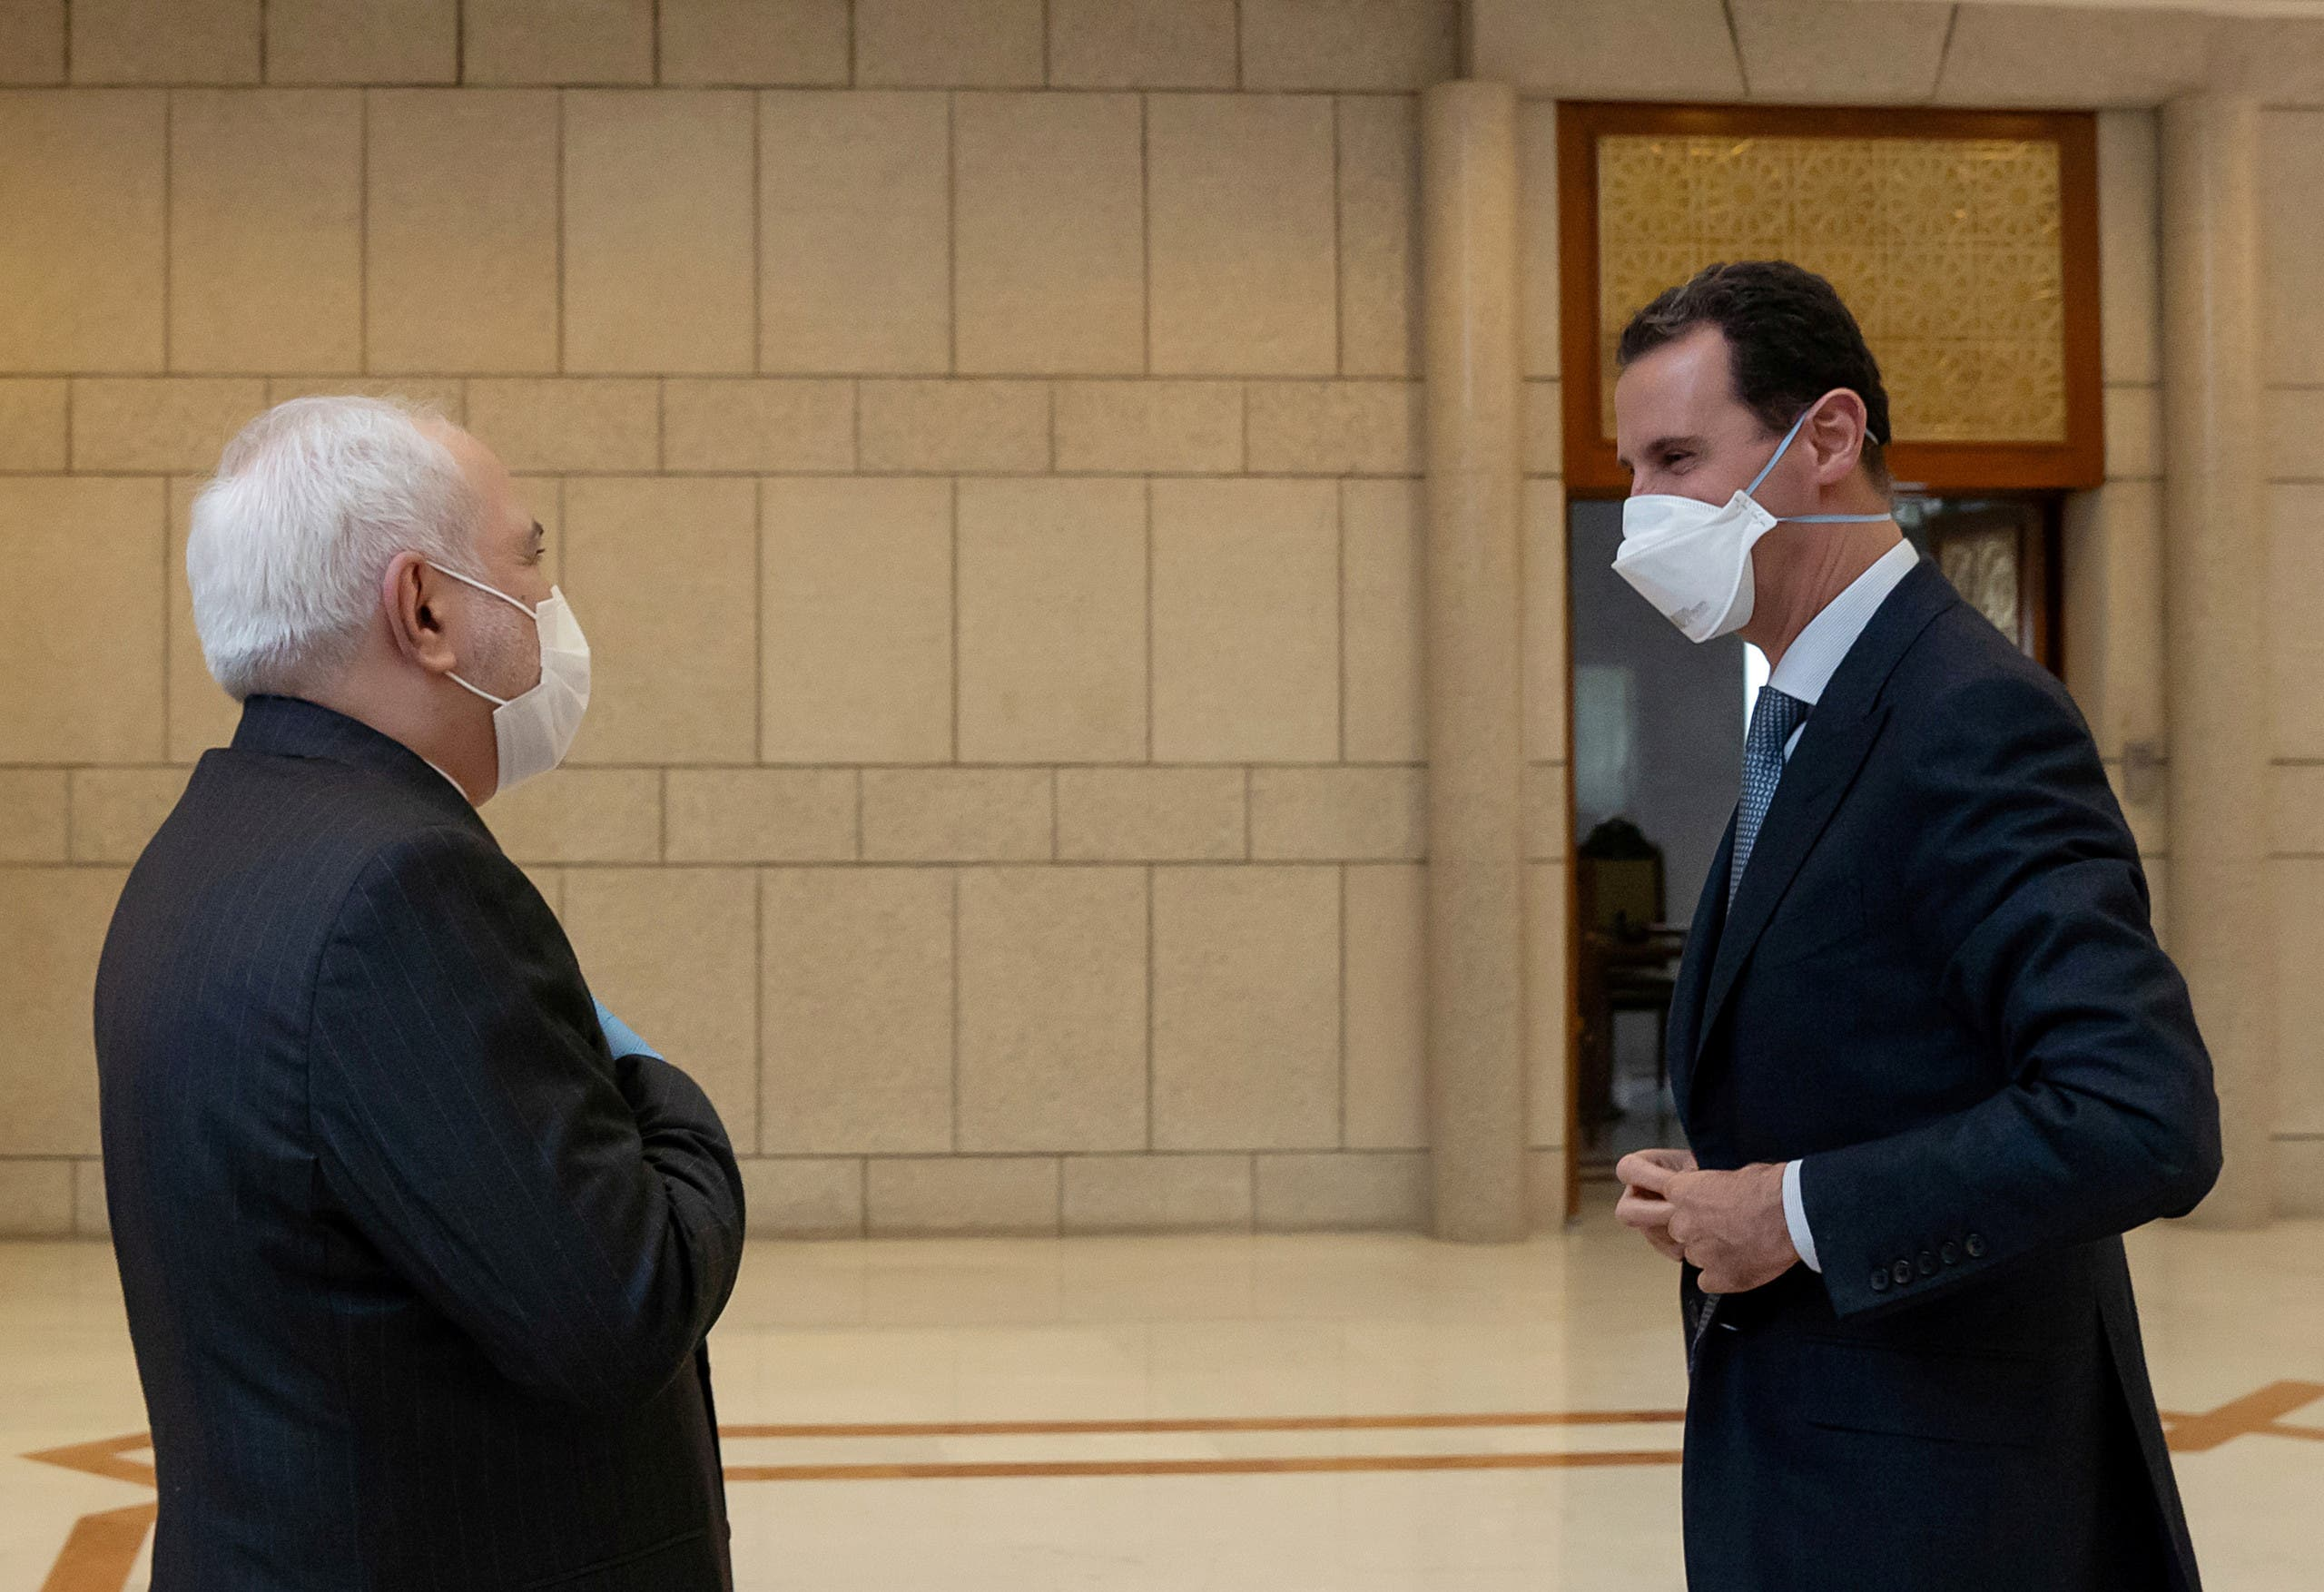 Syria's President Bashar al-Assad and Iran's Foreign Minister Mohammad Javad Zarif, wearing face masks as protection against the spread of the coronavirus disease (COVID-19), meet in Damascus, Syria. (Reuters)